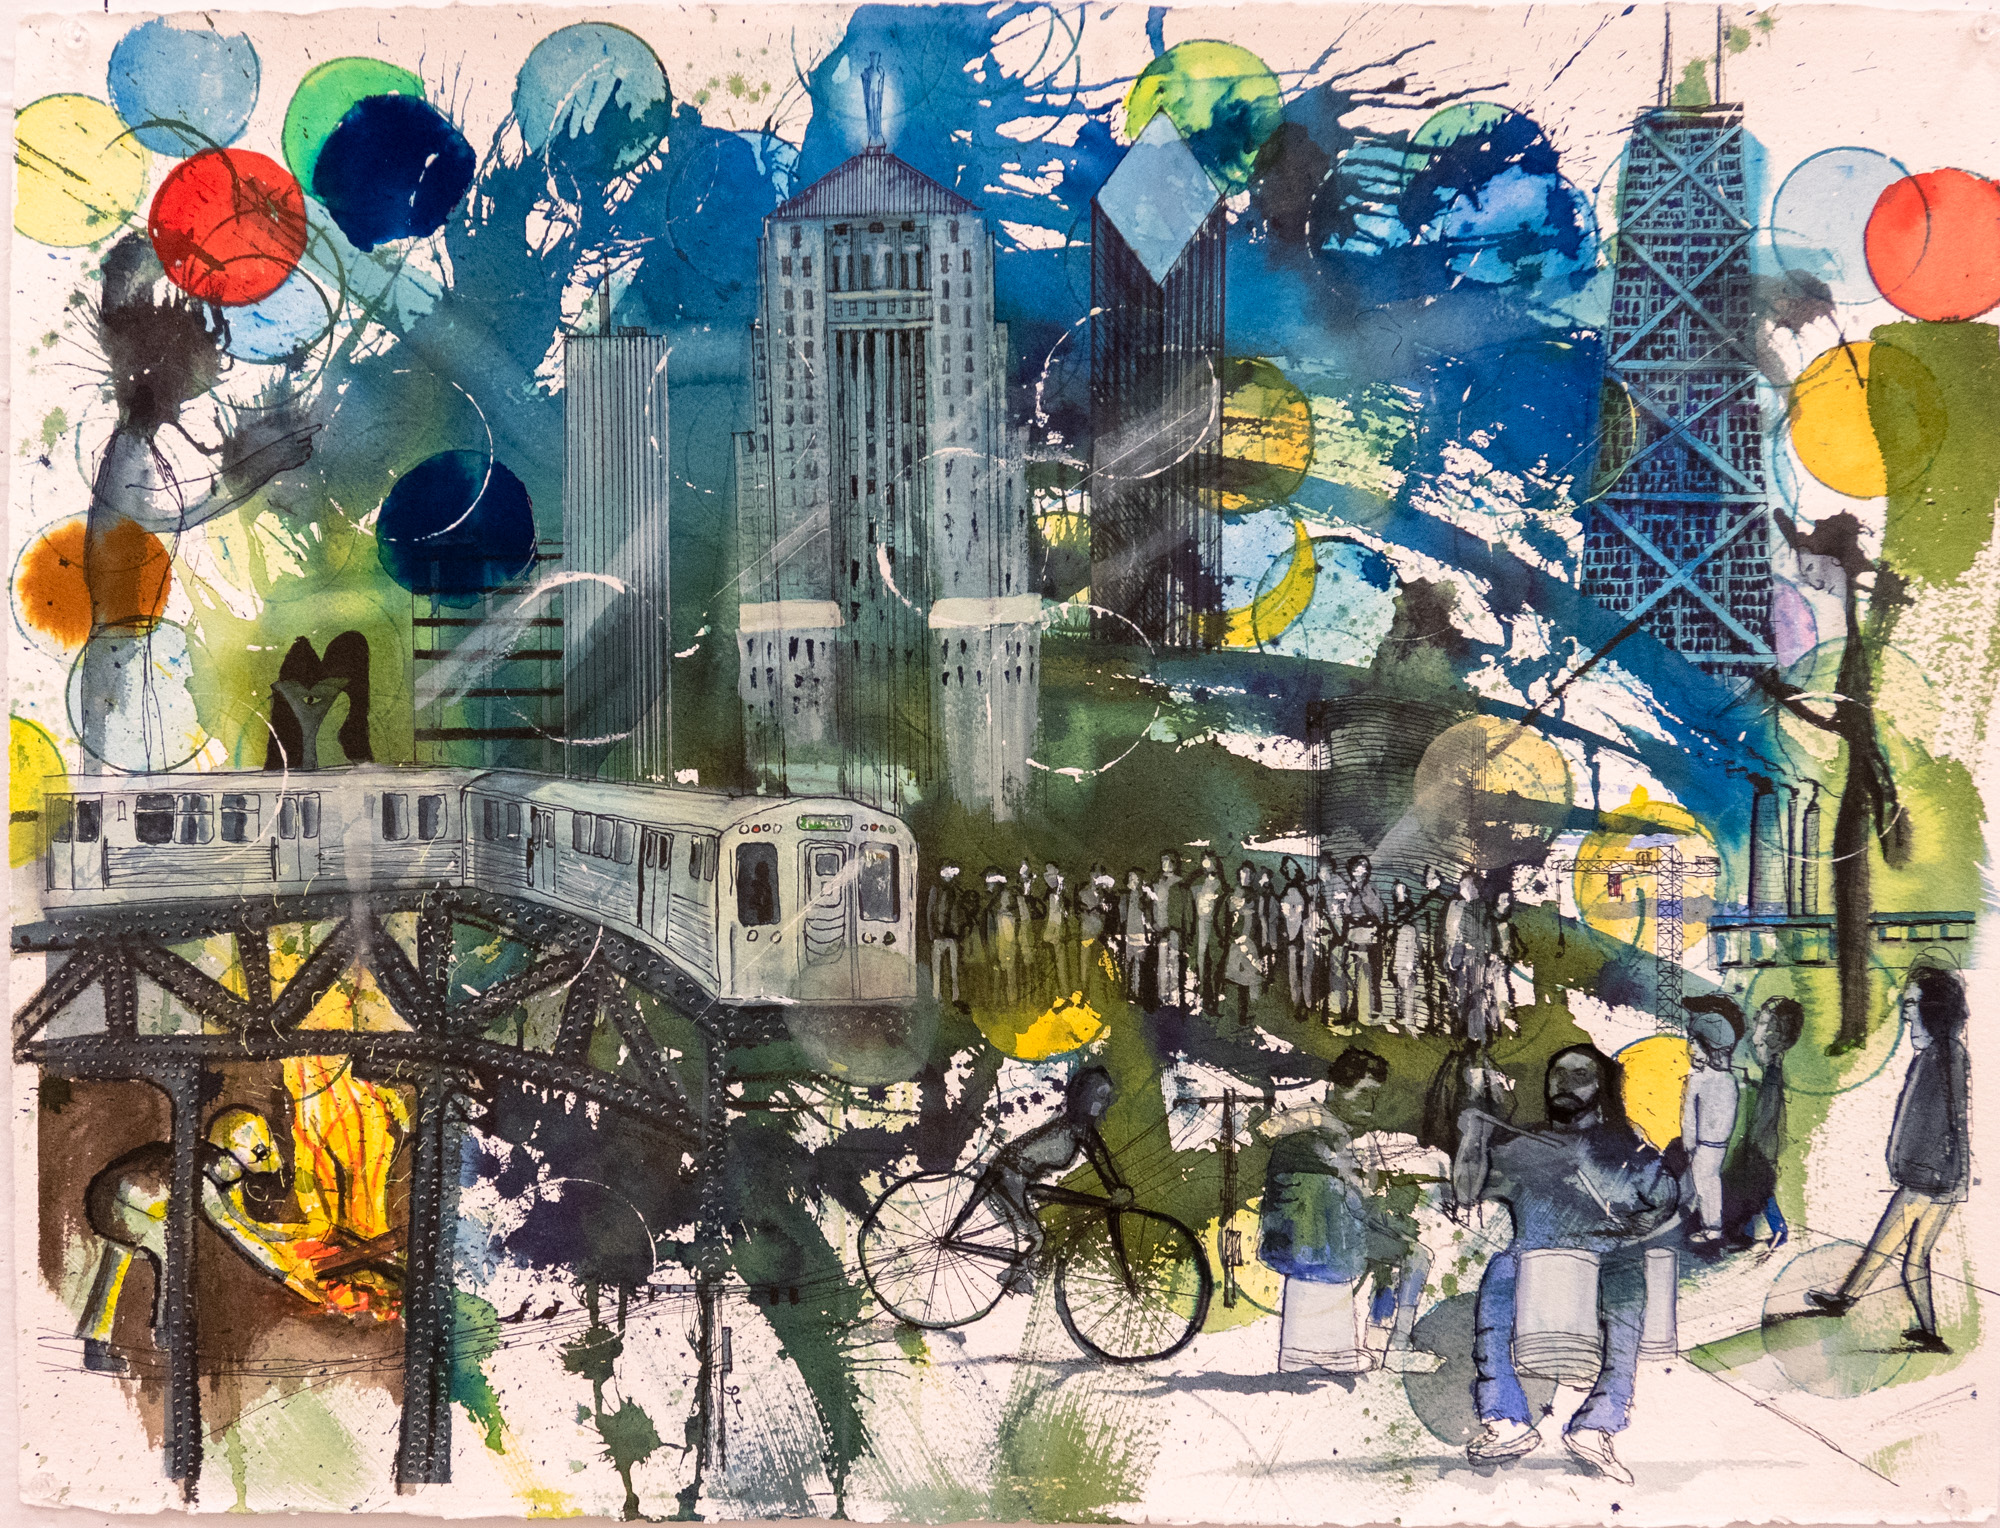 """And maybe it's a poet's town"" [Nelson Algren, ""Chicago on the Make"" 1951]  Watercolor, ink, and marker on Arches 300 lb. paper. 30"" X 22"""